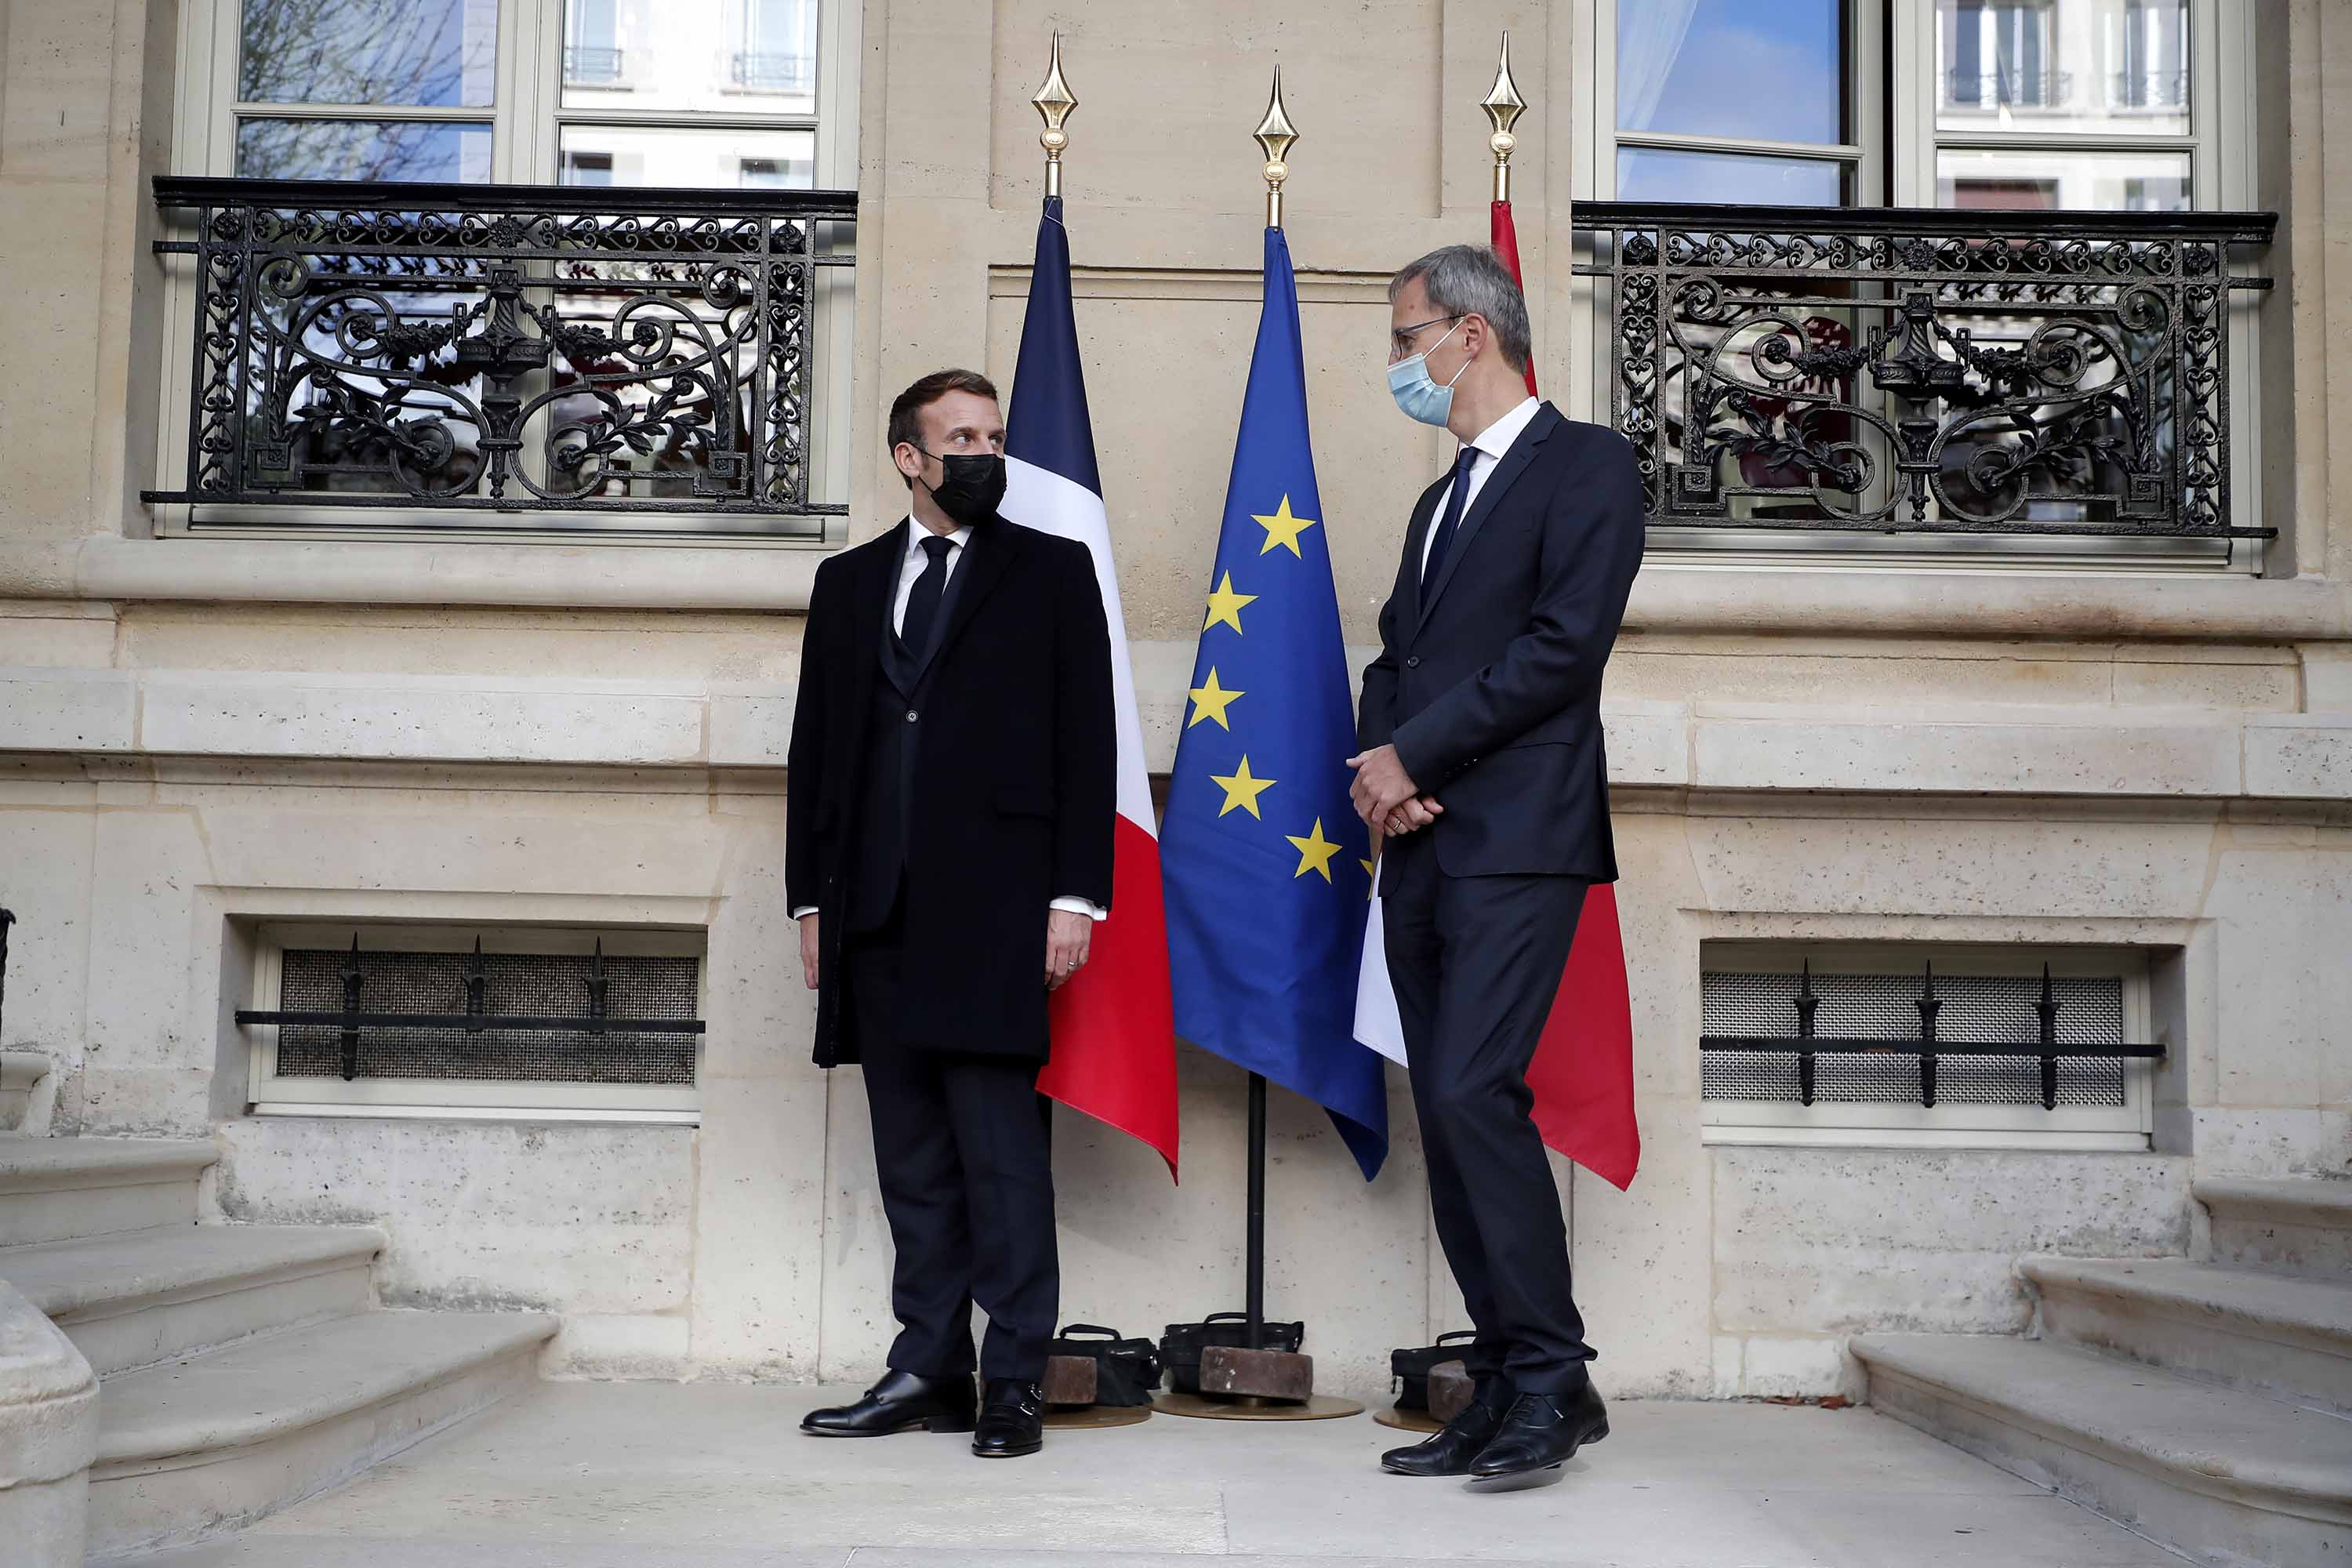 French President Emmanuel Macron, left, speaks with Wolfgang Wagner, Deputy Head of Mission at the Austrian embassy, before signing a condolence book for victims of the Vienna attack, in Paris, on Tuesday.